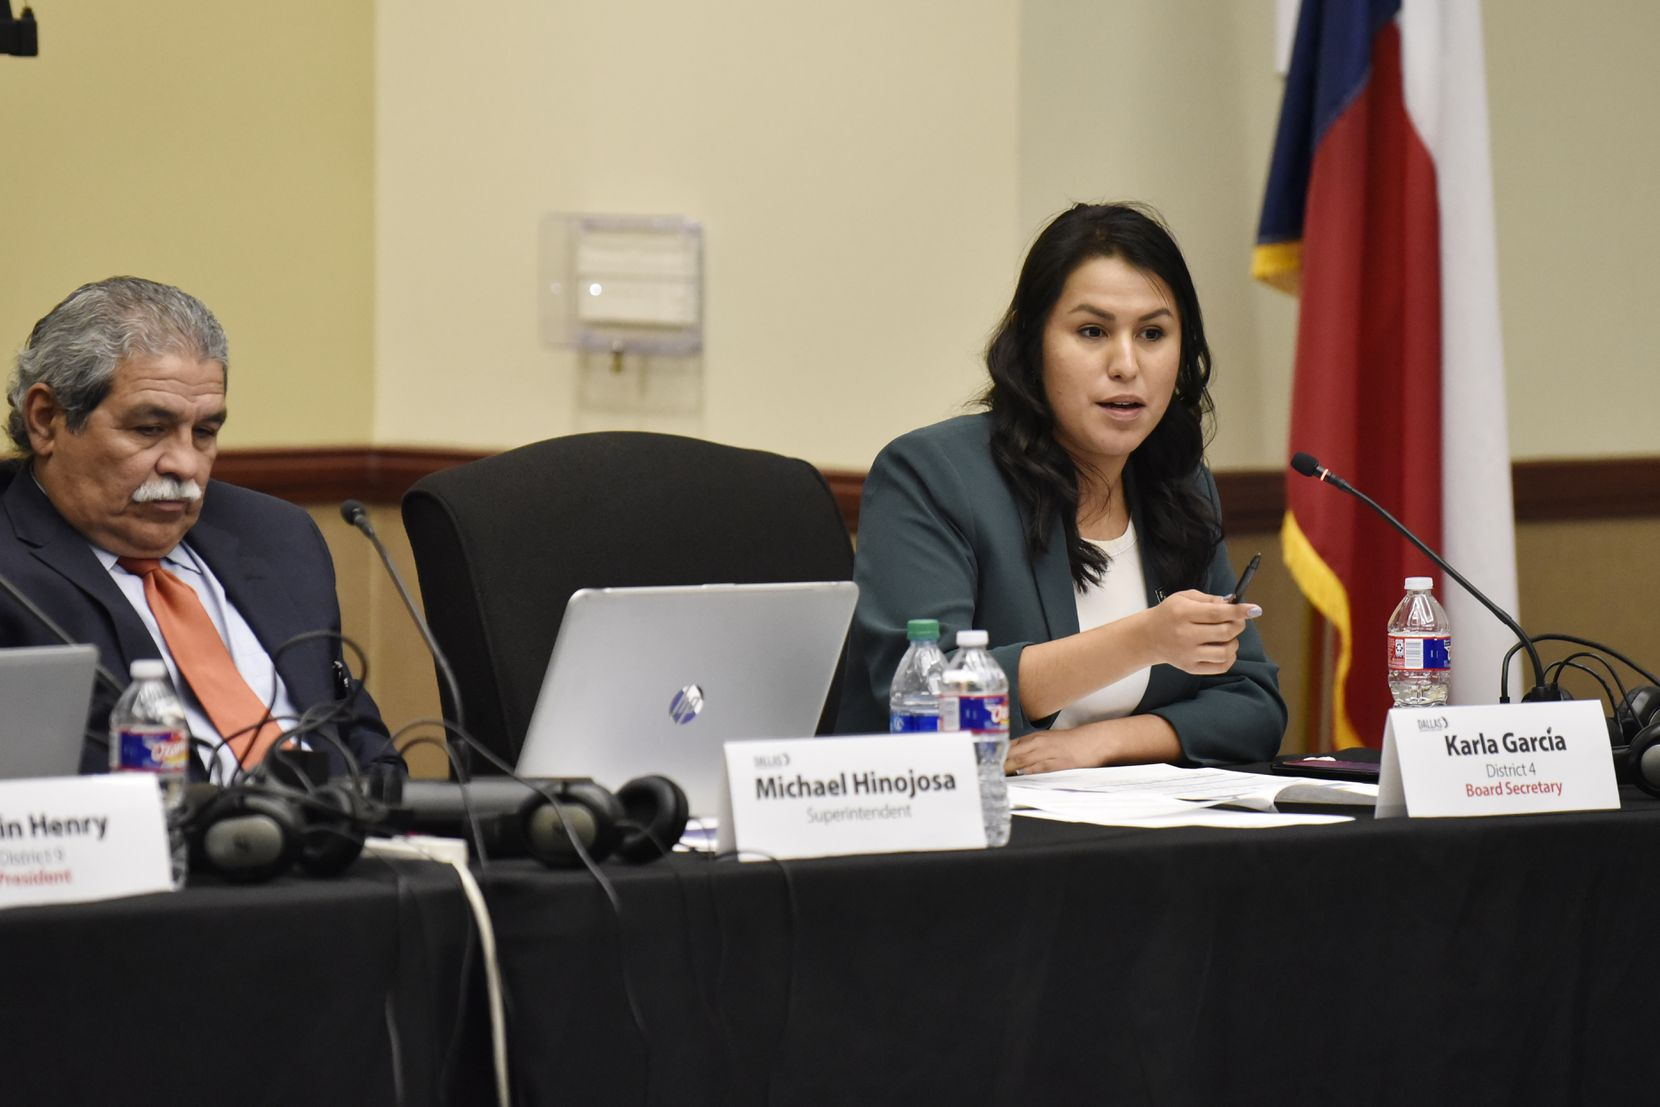 DISD District 4 trustee Karla Garcia, with Superintendent Michael Hinojosa, speaks during a board meeting at the Dallas County Schools Technology and Training Center.